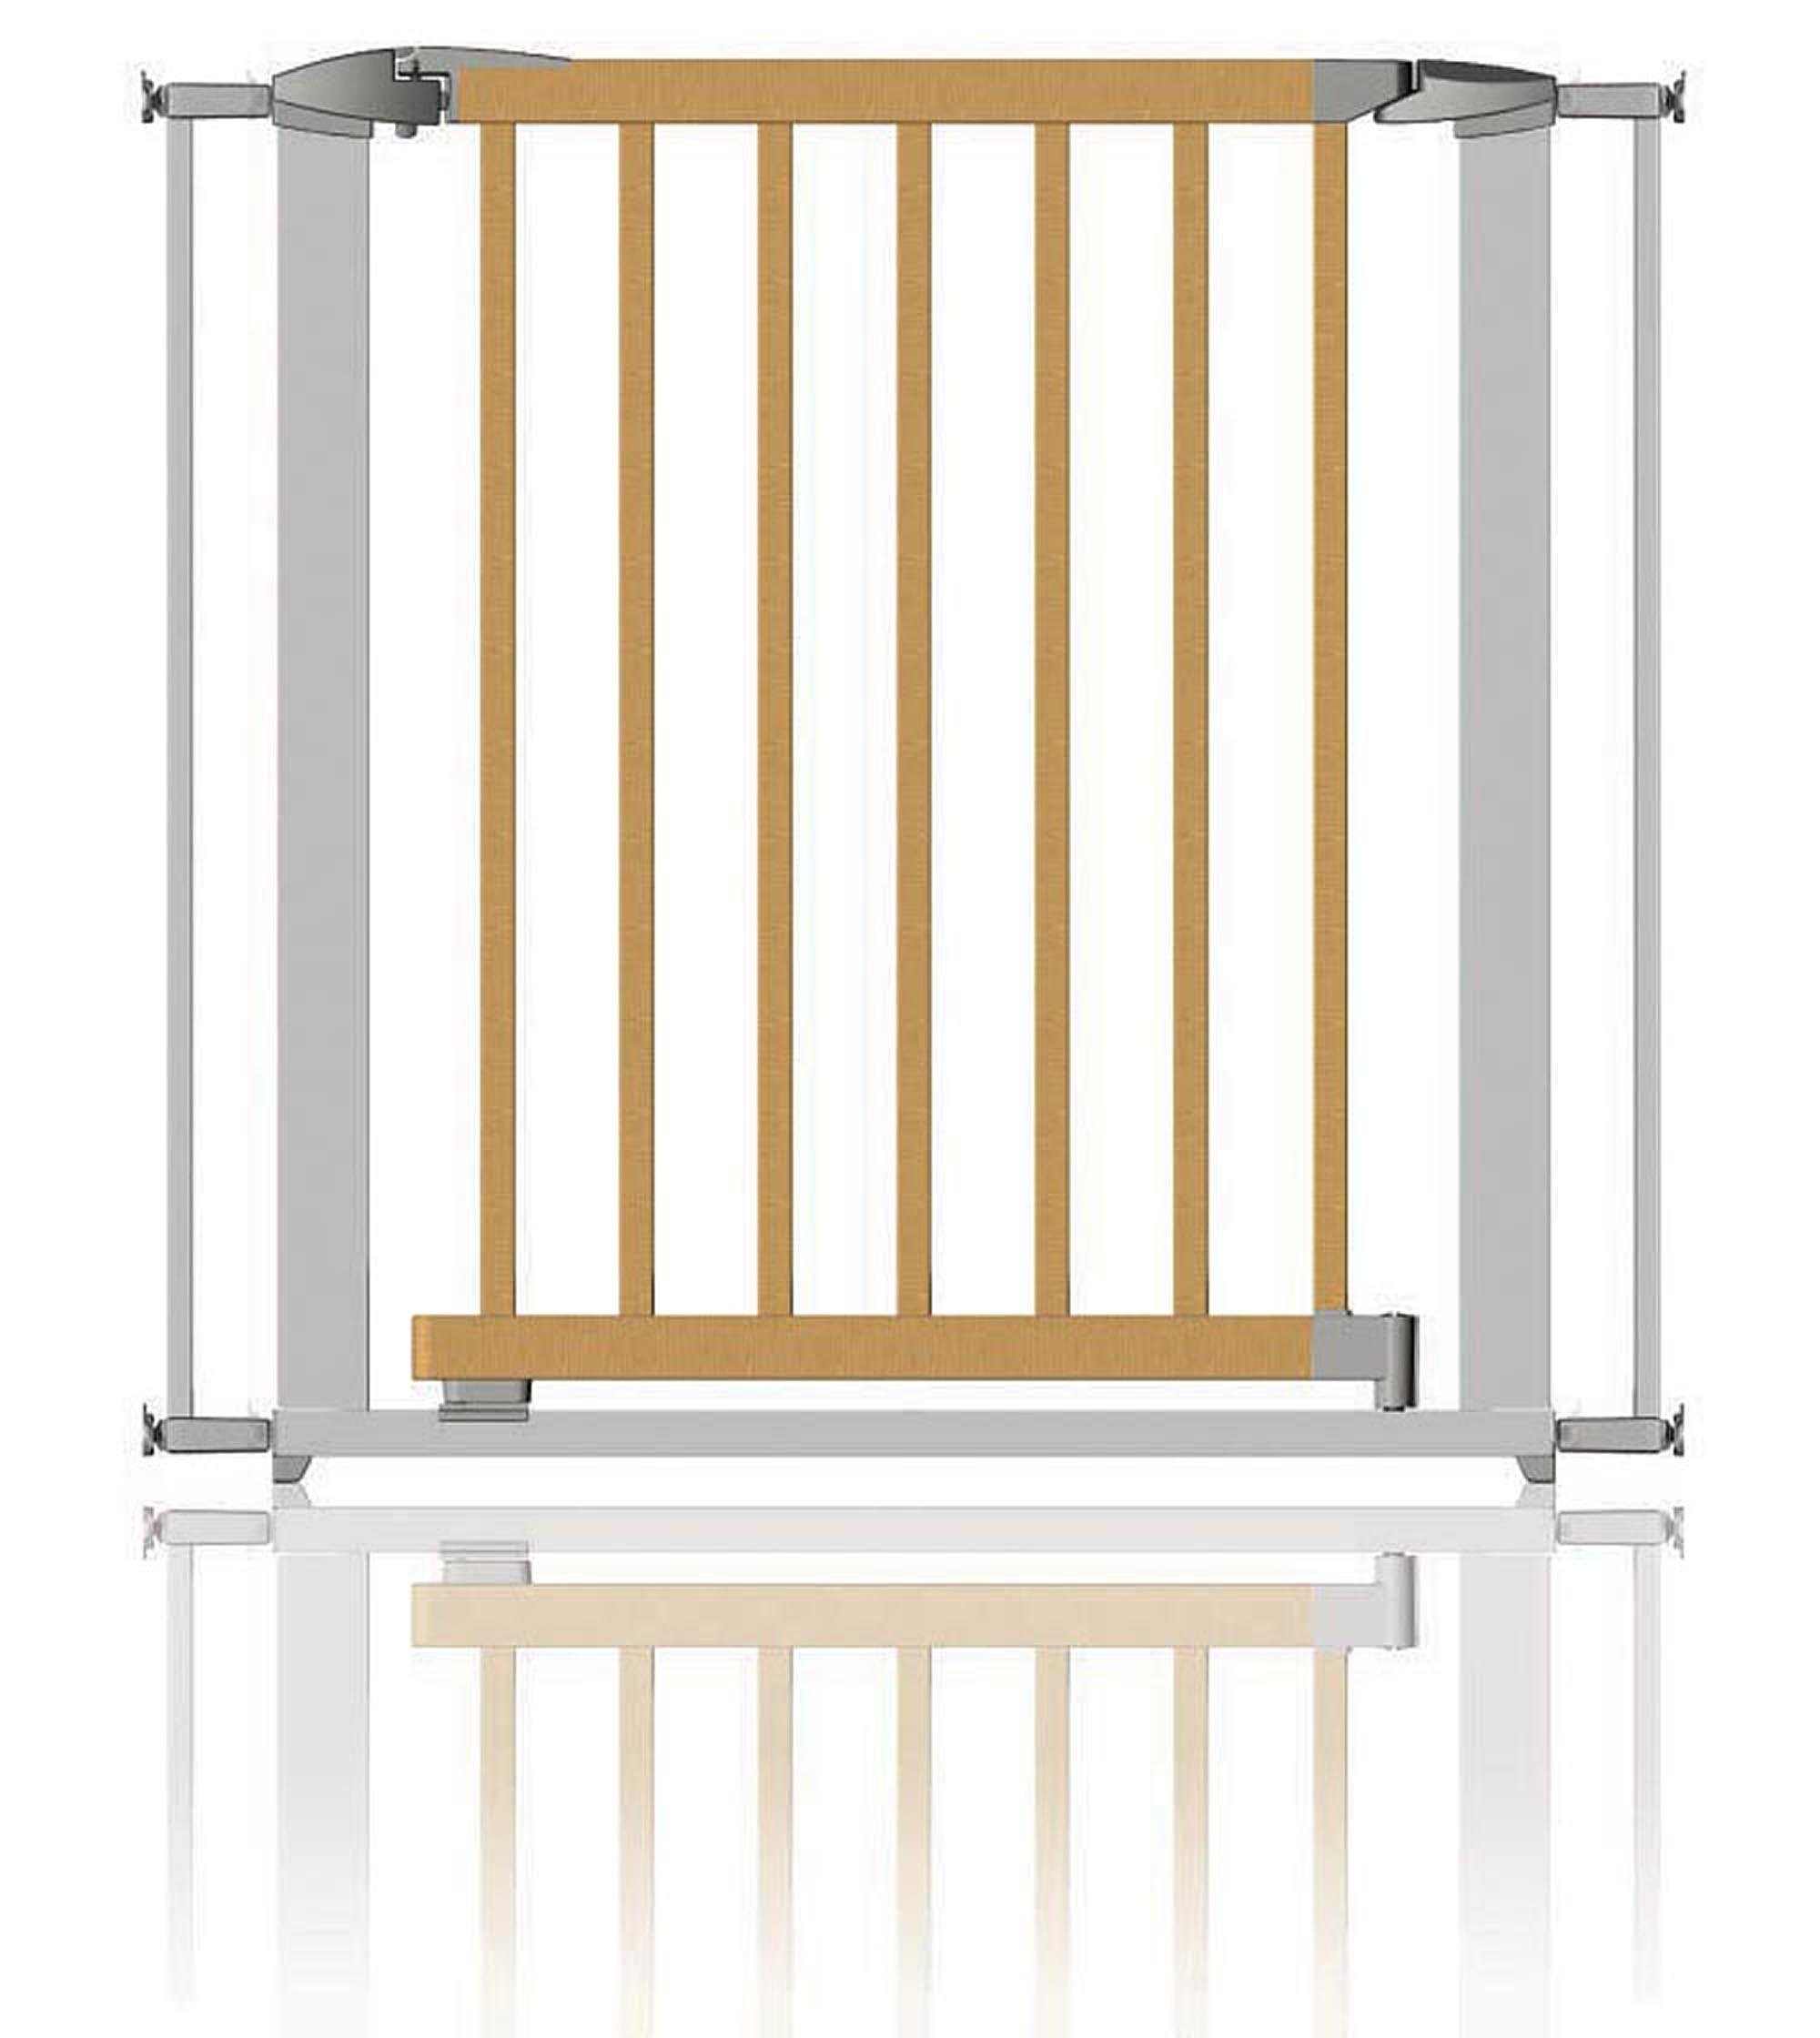 Clippasafe Extendable Swing Shut Gate (Metal and Wood) Clippasafe Swing Shut Mechanism Pressure Mounted Fits from 72.5cm to 95cm 1